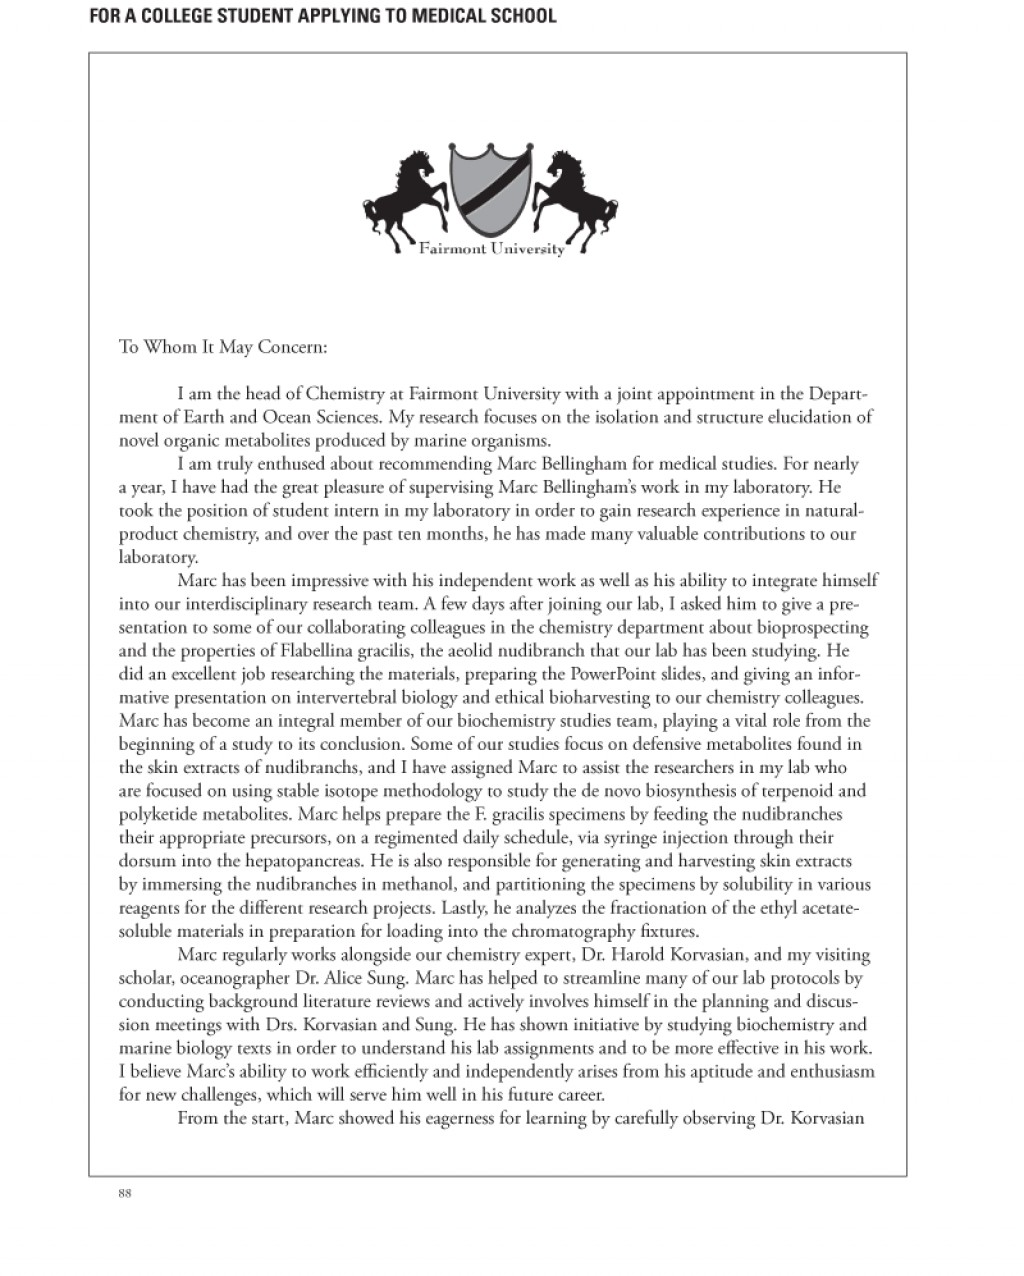 017 Satire Essays Letter Of Recommendation Sample 1resize8002c997 Essay Fearsome Satirical Topics For High School Examples On Gun Control Large